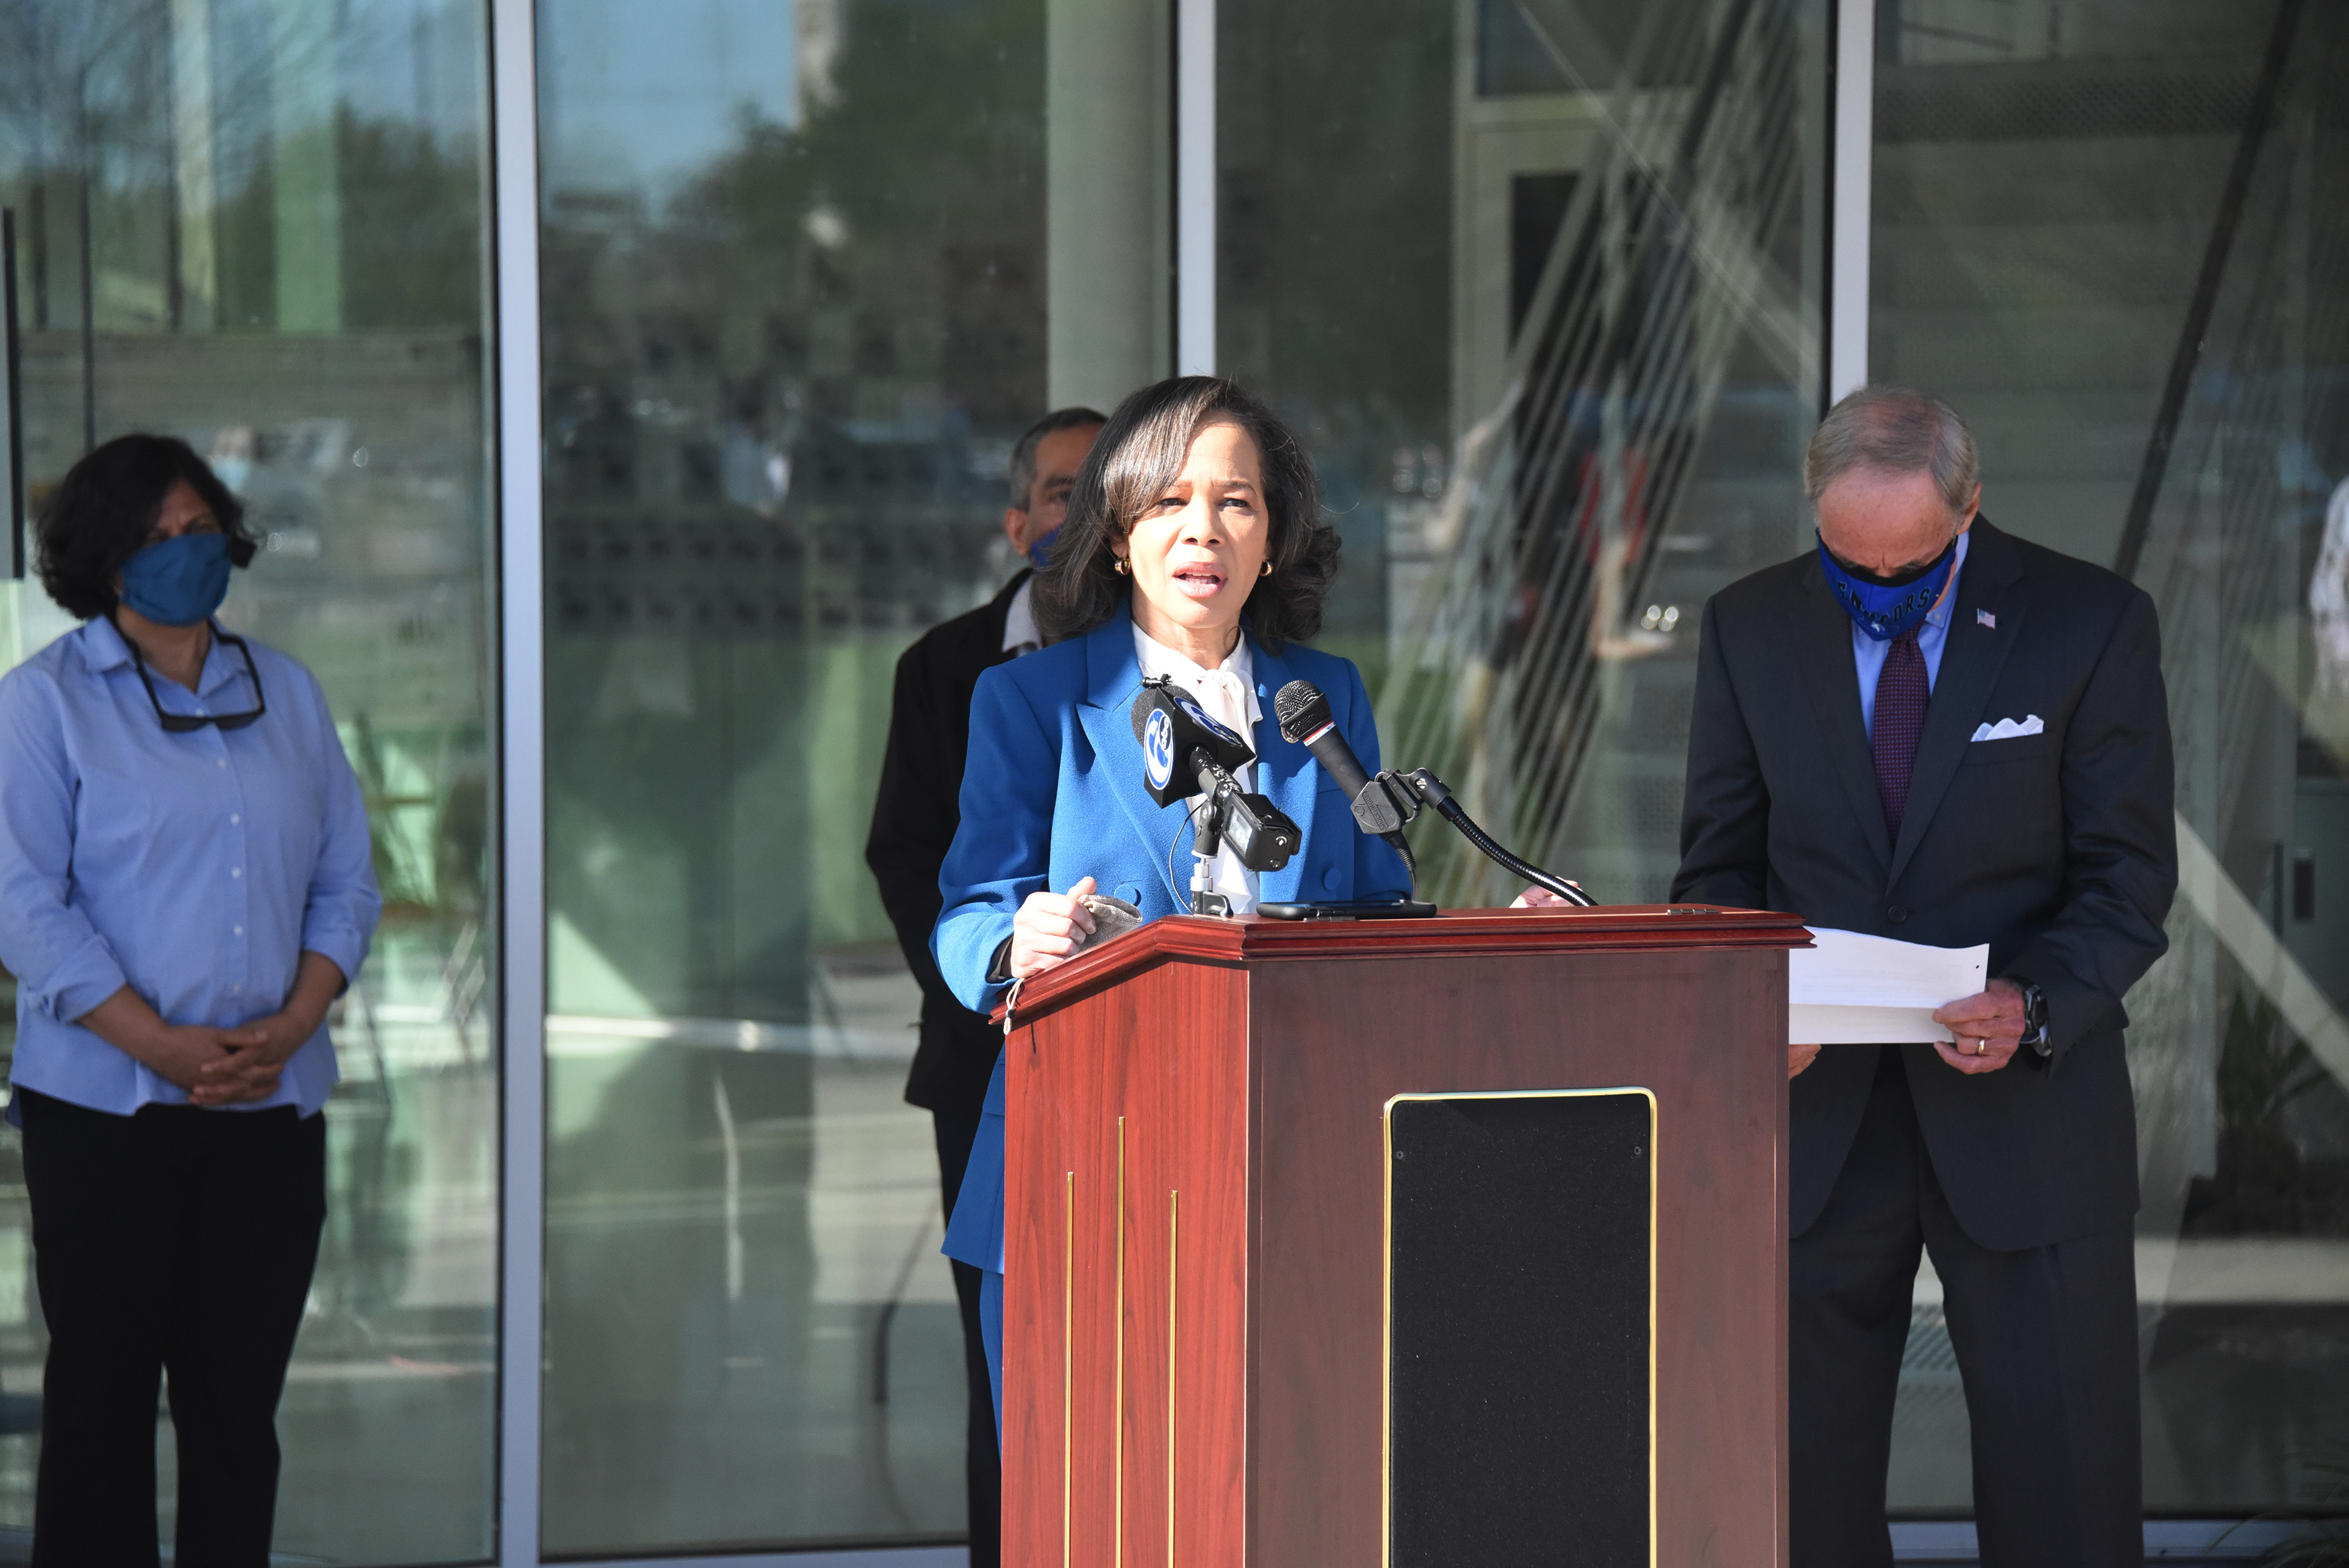 U.S. Rep. Lisa Blunt Rochester speaks during a visit by the Congressional Delegation to celebrate the Department of Defense grant award to Del State to establish a Quantum Sensing Center on campus. In the background (l-r) are the center's co-directors Dr. Renu Tripathi and Dr. Gour Pati, as well as U.S. Sen. Tom Carper.